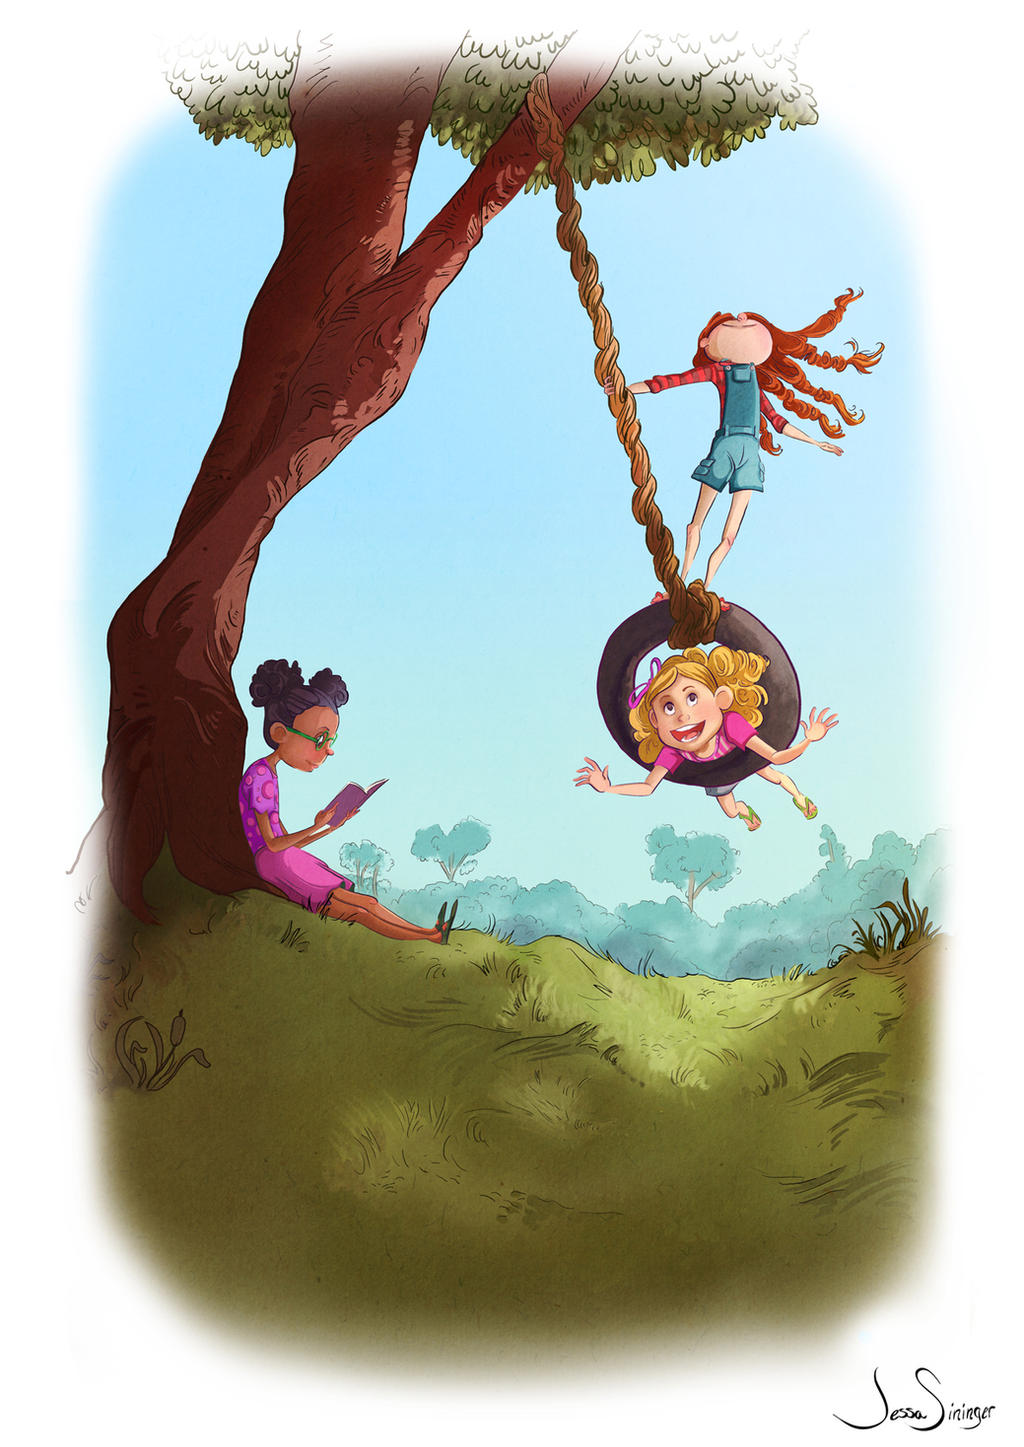 The Tire Swing by jbsdesigns